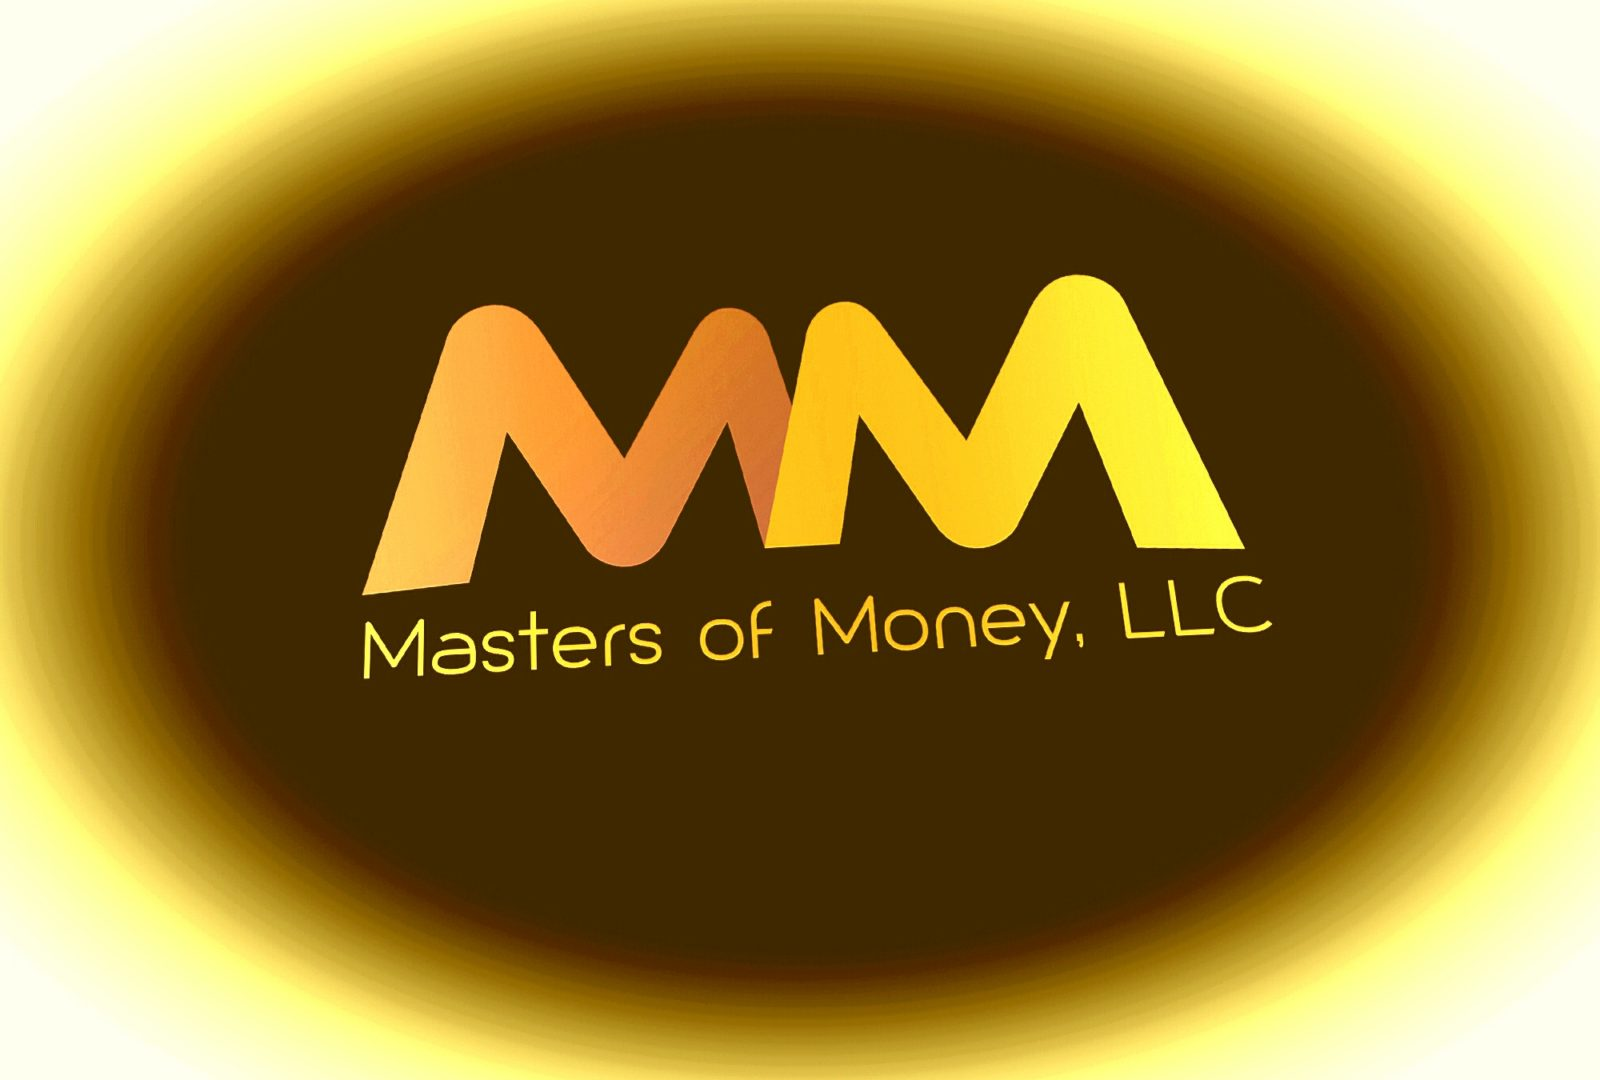 Masters of Money LLC Orange Brown & Yellow Logo